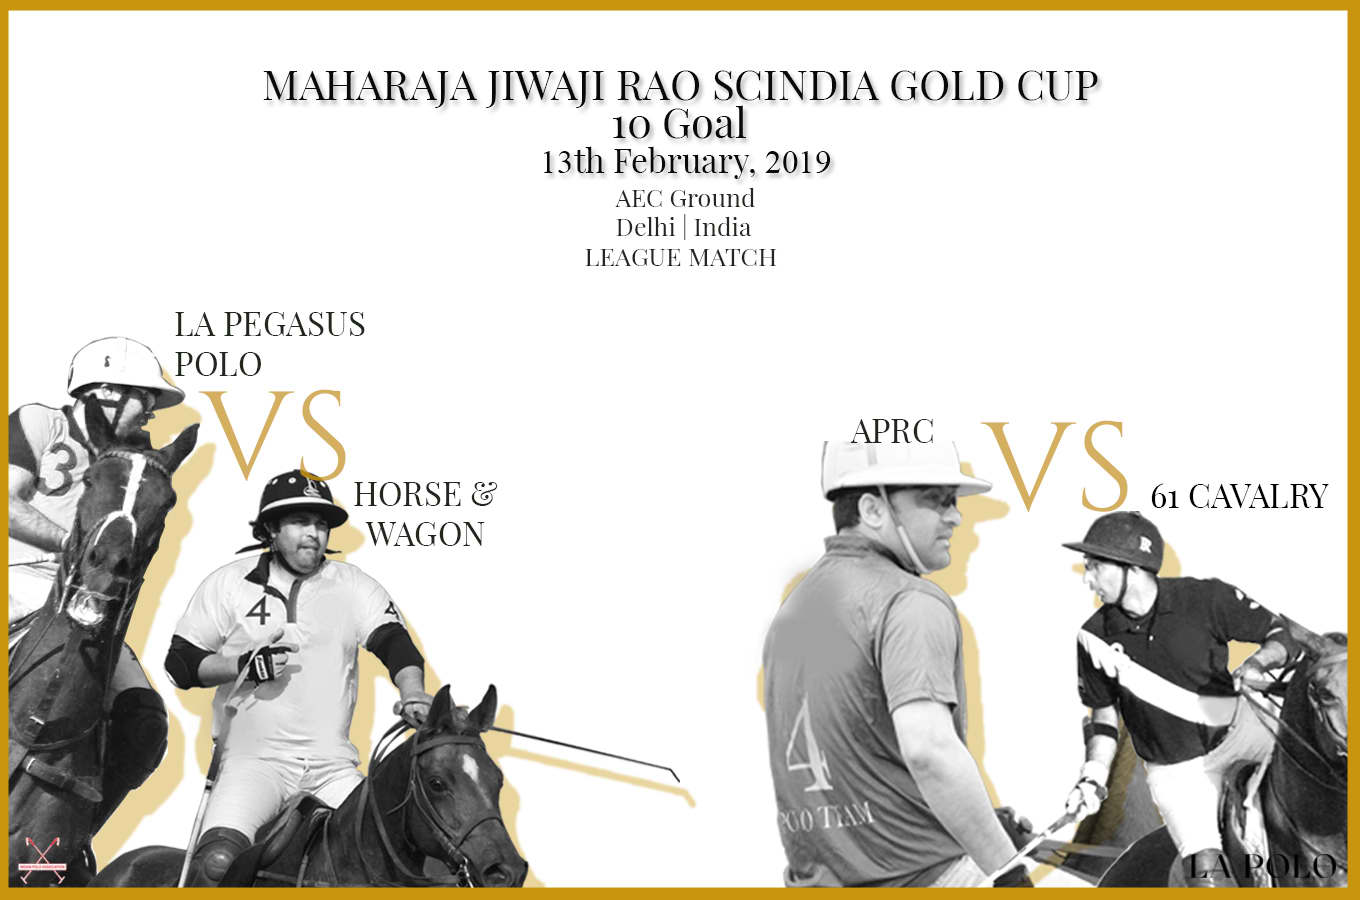 third day of Maharaja Jiwaji Rao Scindia Gold Cup